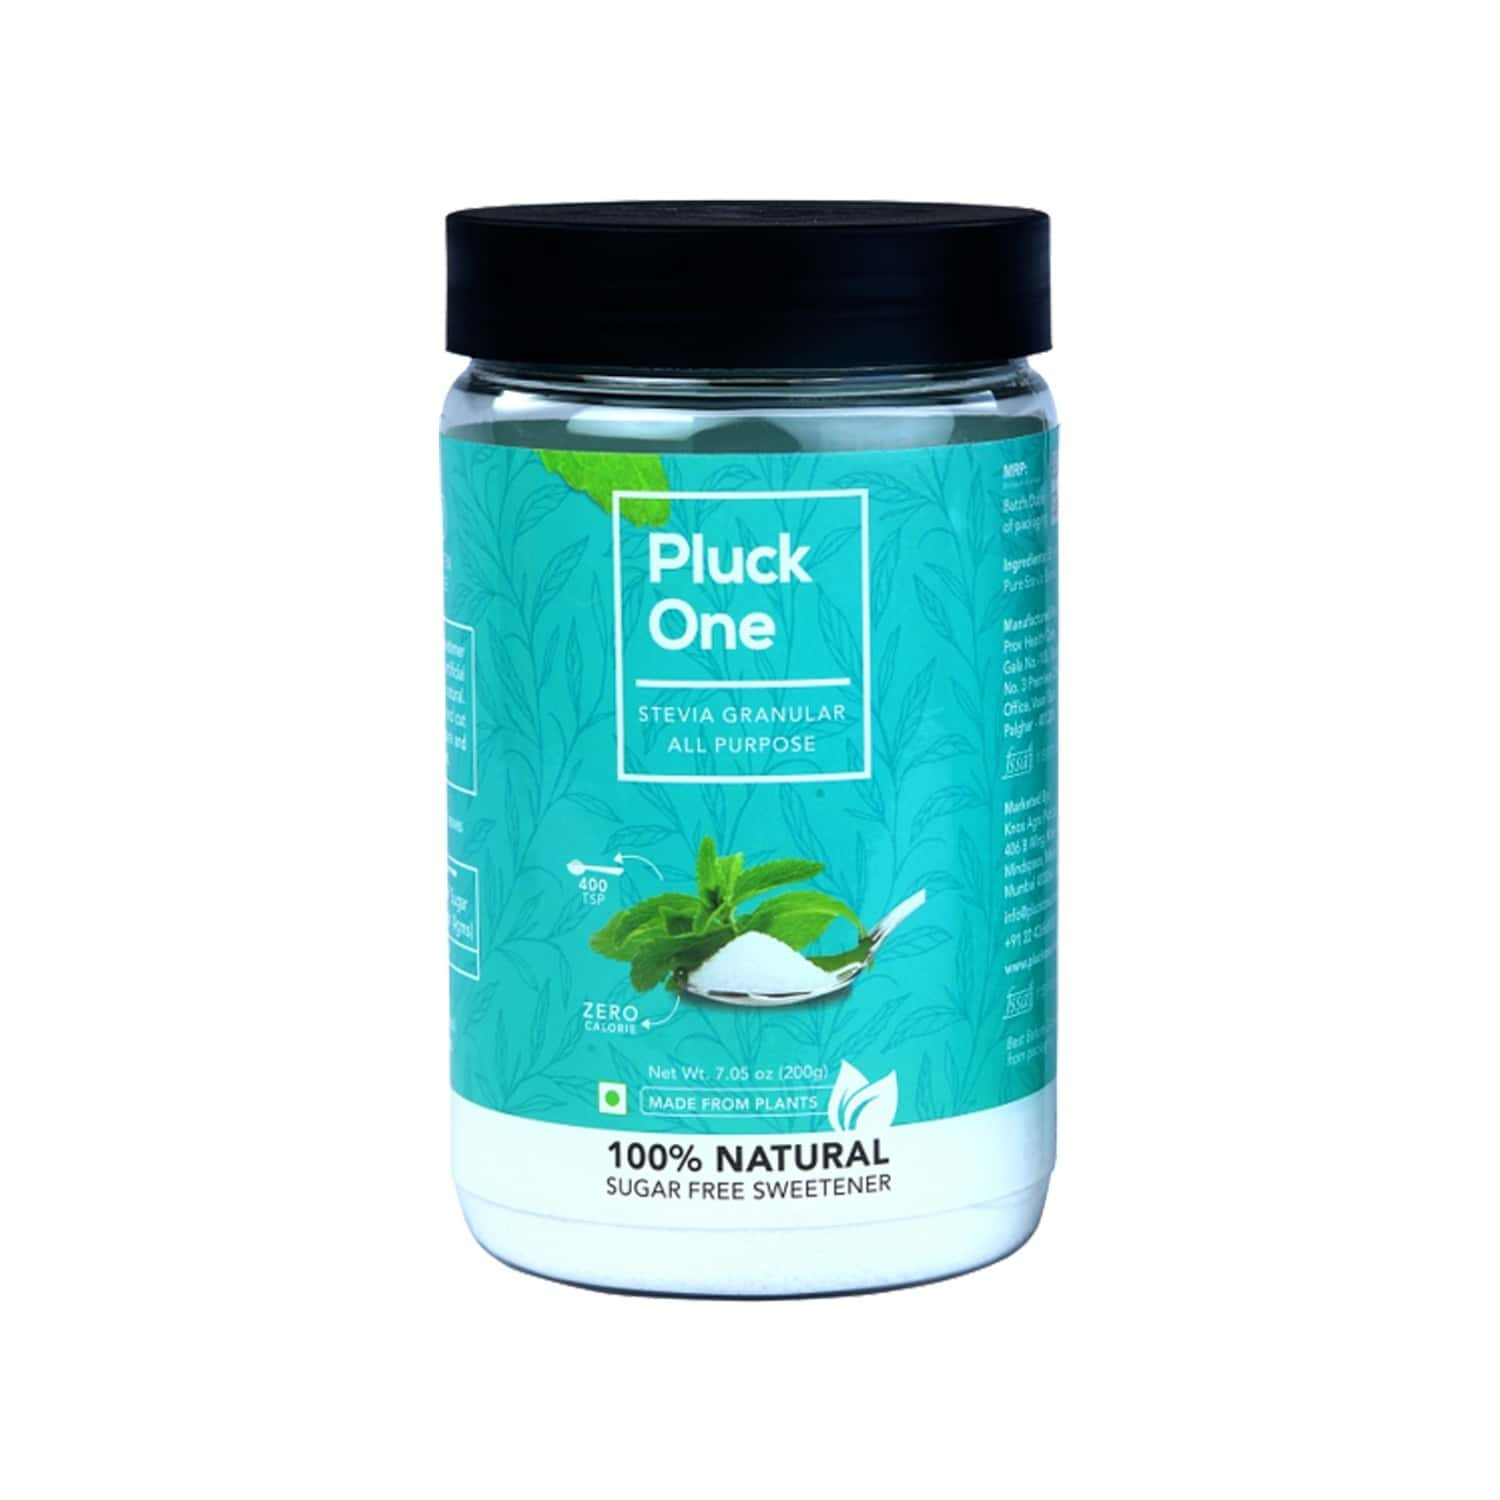 Pluck One Combo 15 - All Purpose Stevia - 200gms + Stevia Brown - 200gms + Premium Dried Stevia Leaves - 50gms